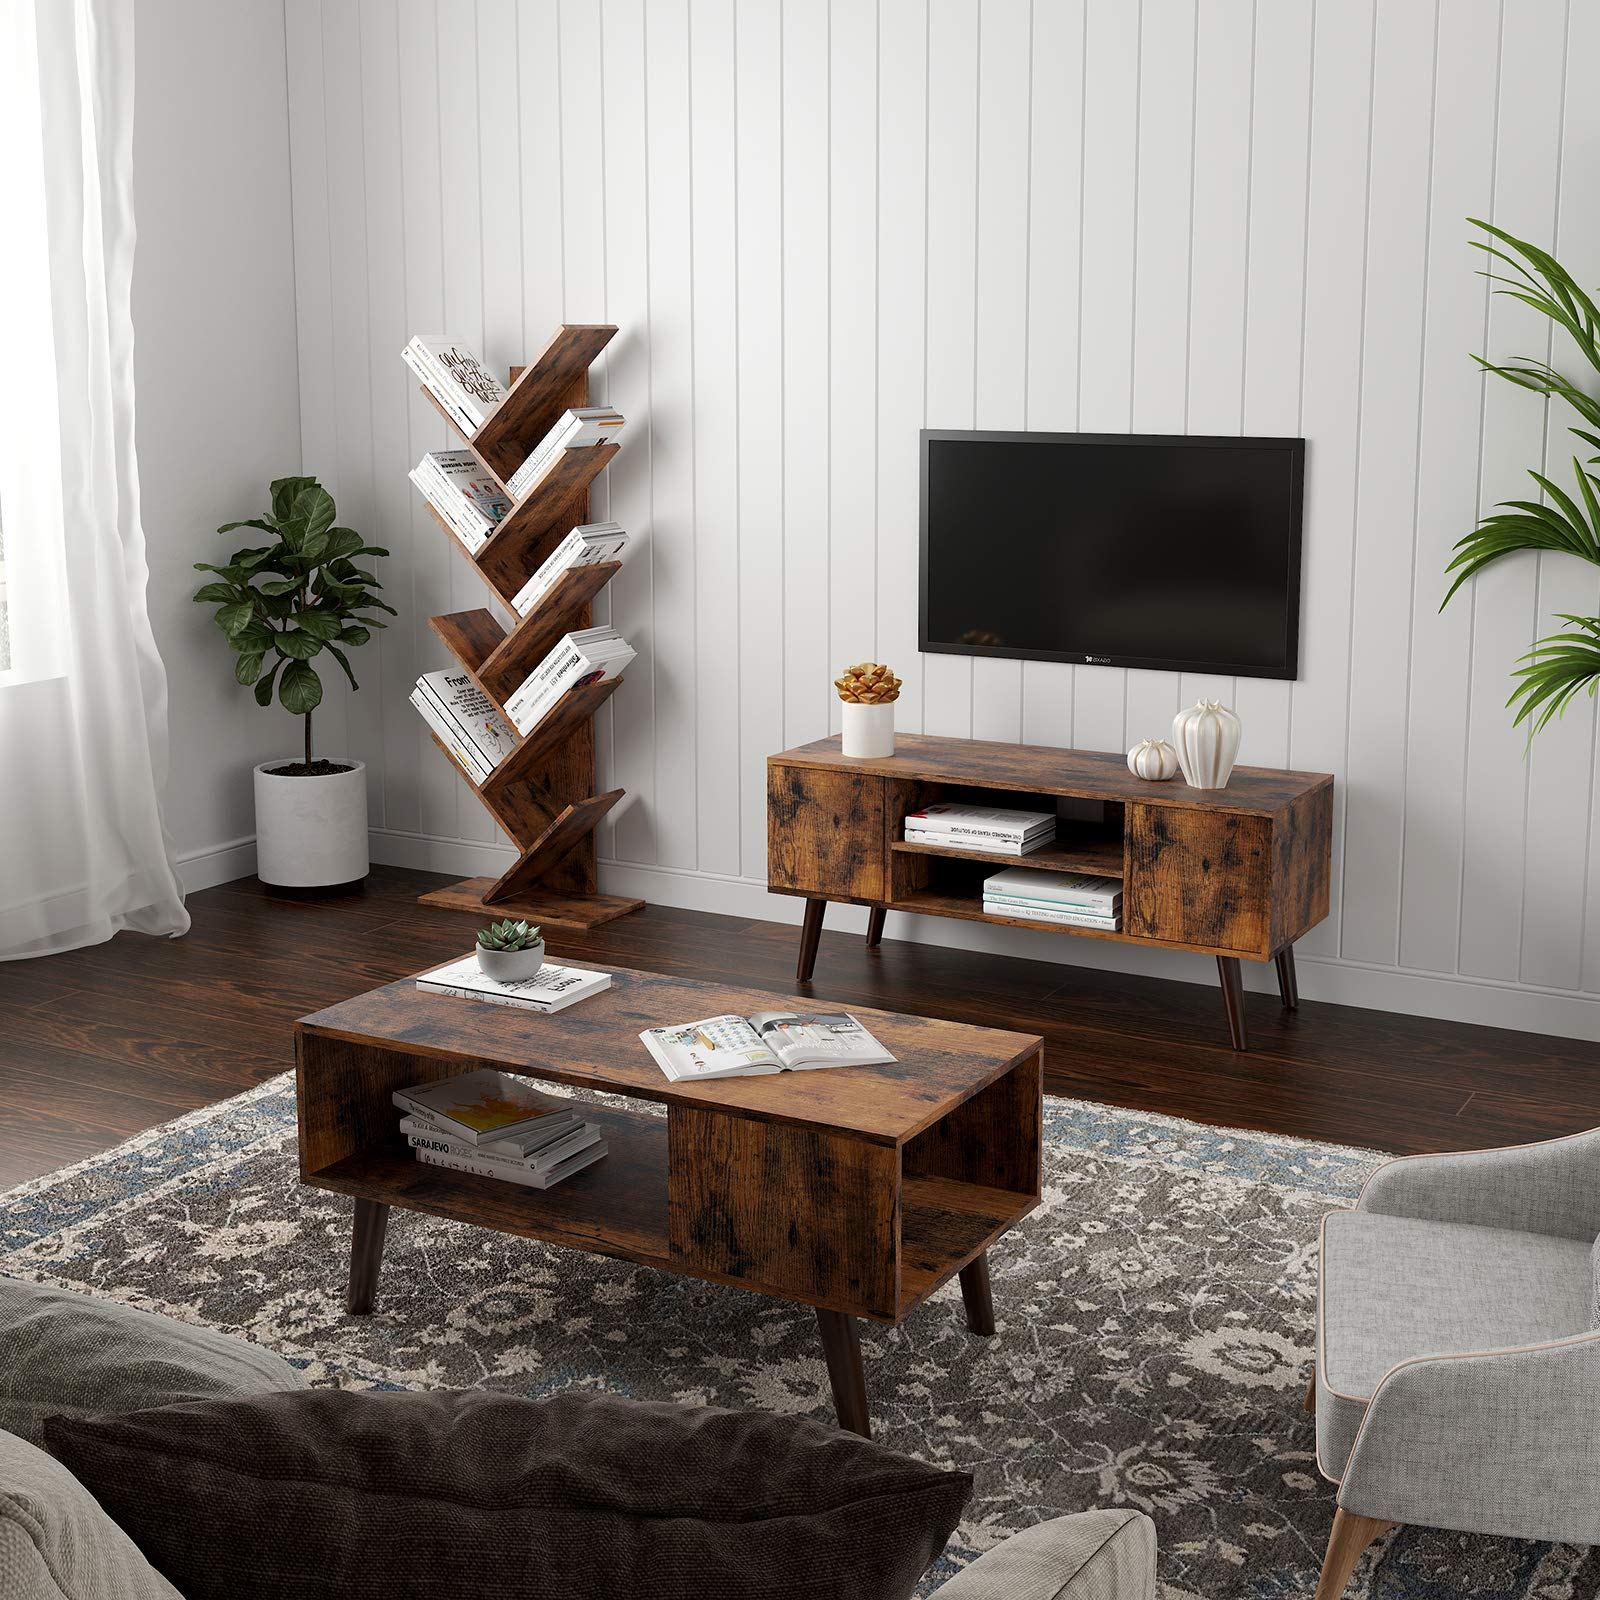 VASAGLE Tree Bookshelf, 8-Tier Floor Standing Bookcase, with Wooden Shelves for Living Room, Home Office, Rustic Brown ULBC11BX by VASAGLE (Image #4)